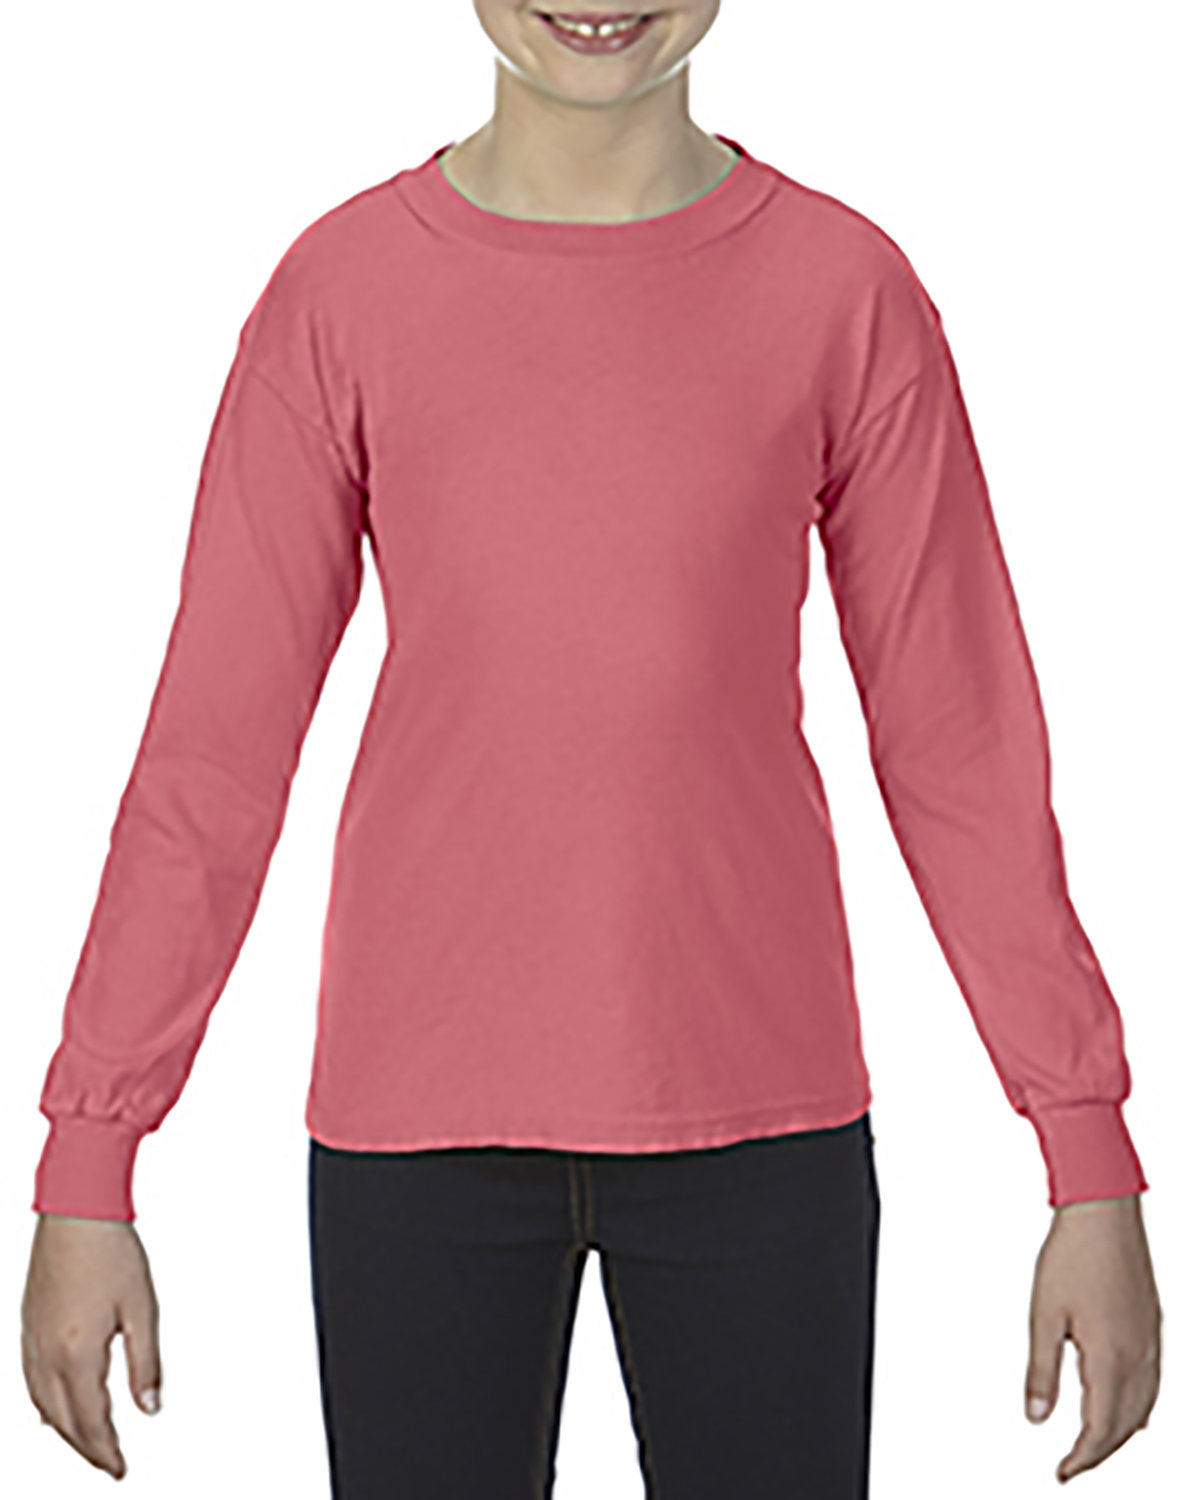 Comfort Colors Youth Garment-Dyed Long-Sleeve T-Shirt WATERMELON